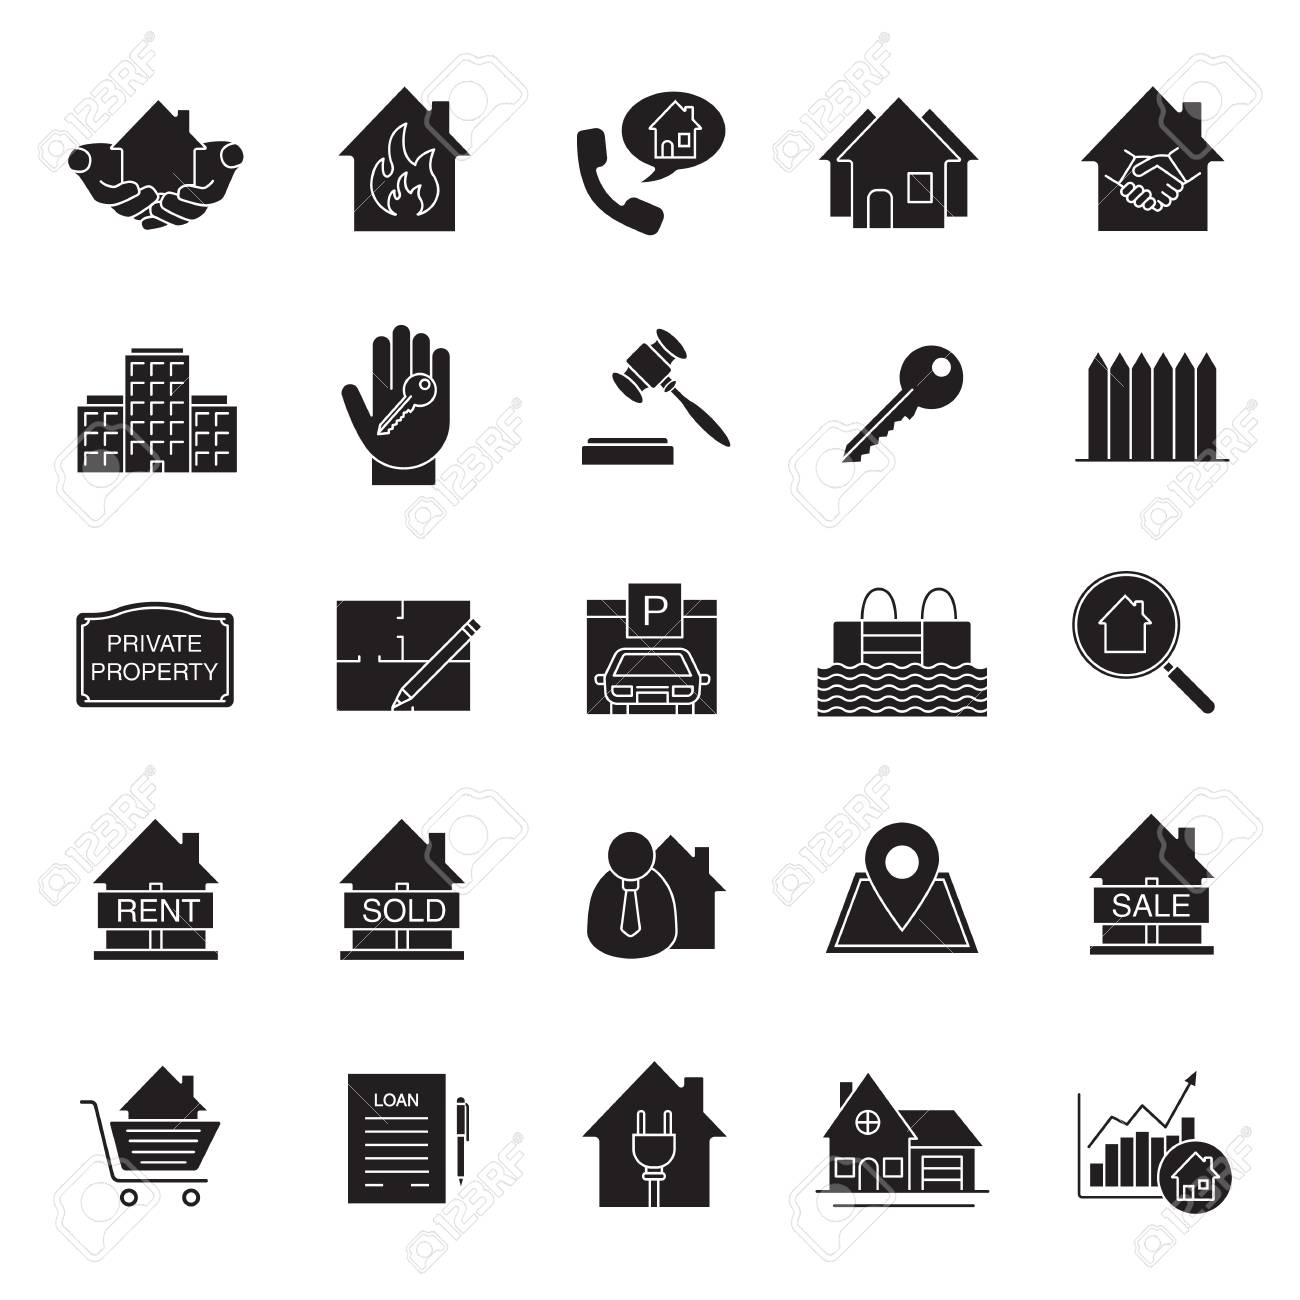 Real estate market glyph icons set property development silhouette real estate market glyph icons set property development silhouette symbols building business home malvernweather Gallery